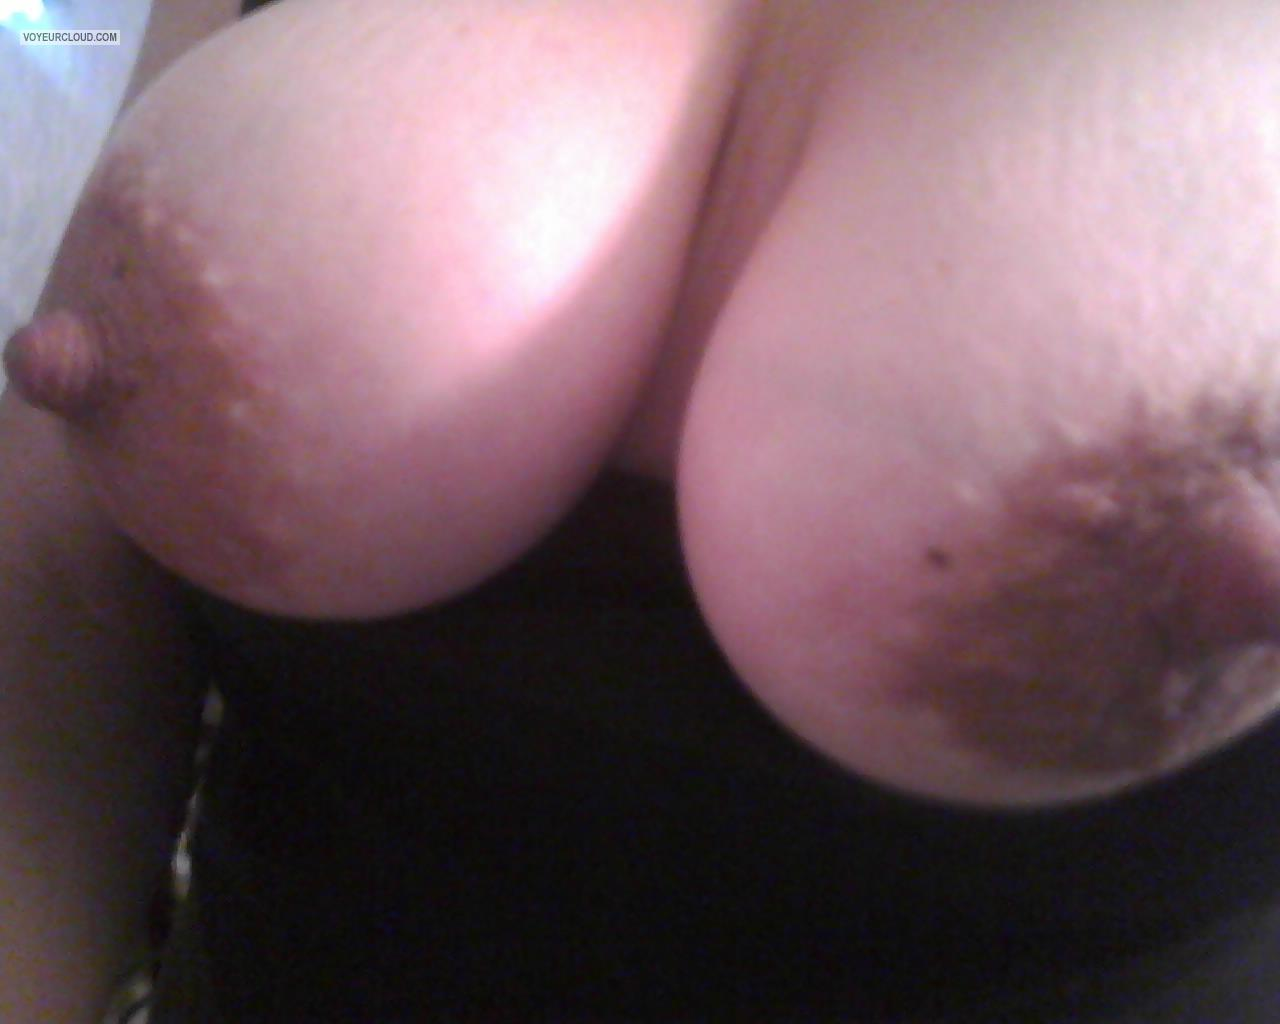 Tit Flash: My Big Tits (Selfie) - Titmom from United States